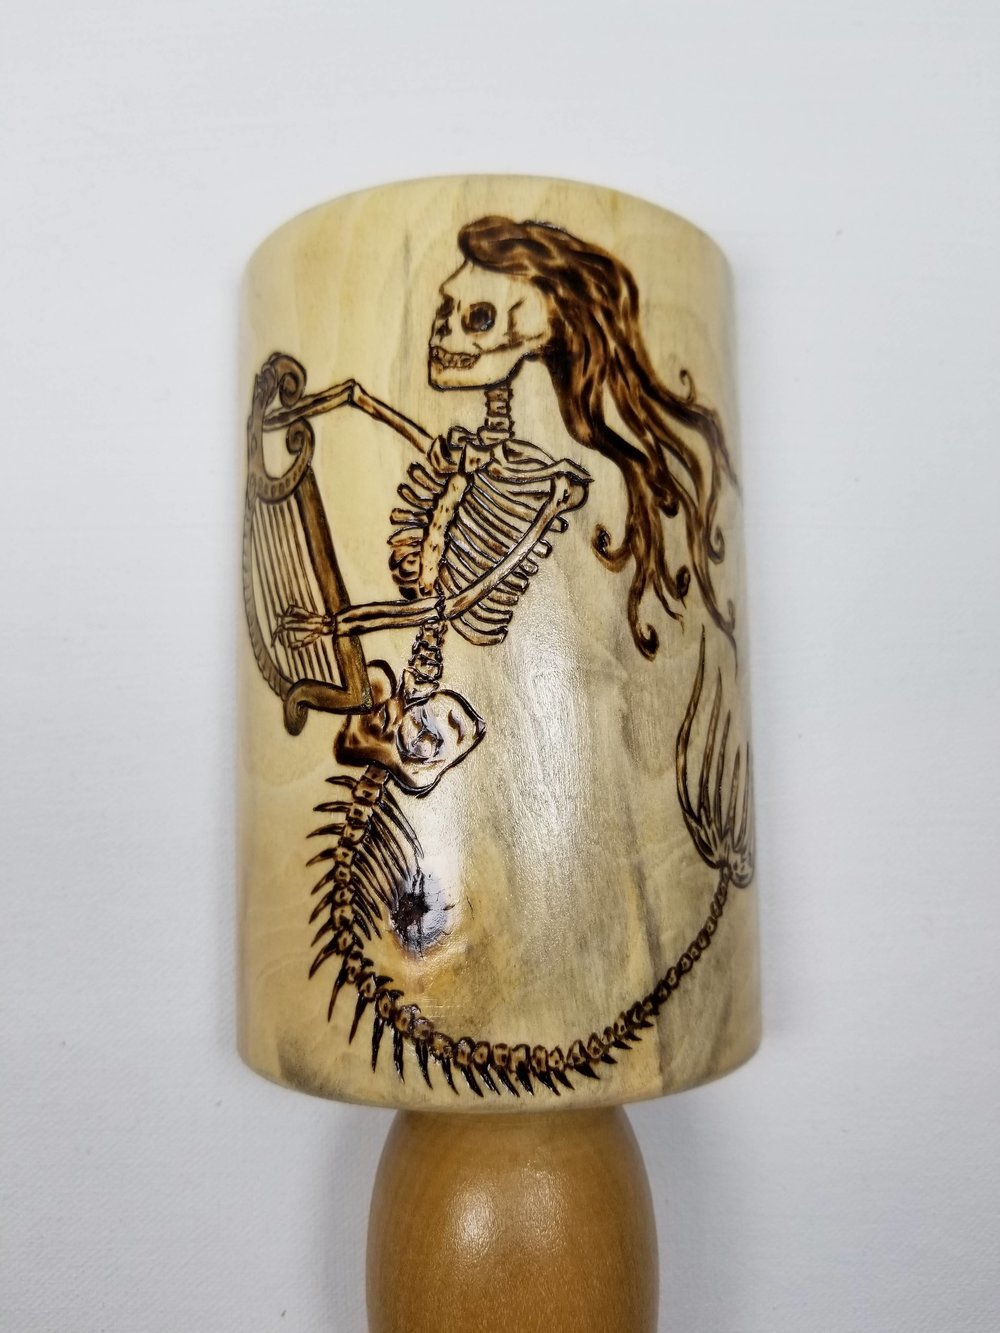 Skeleton banshee mermaid on a bar tap handle.